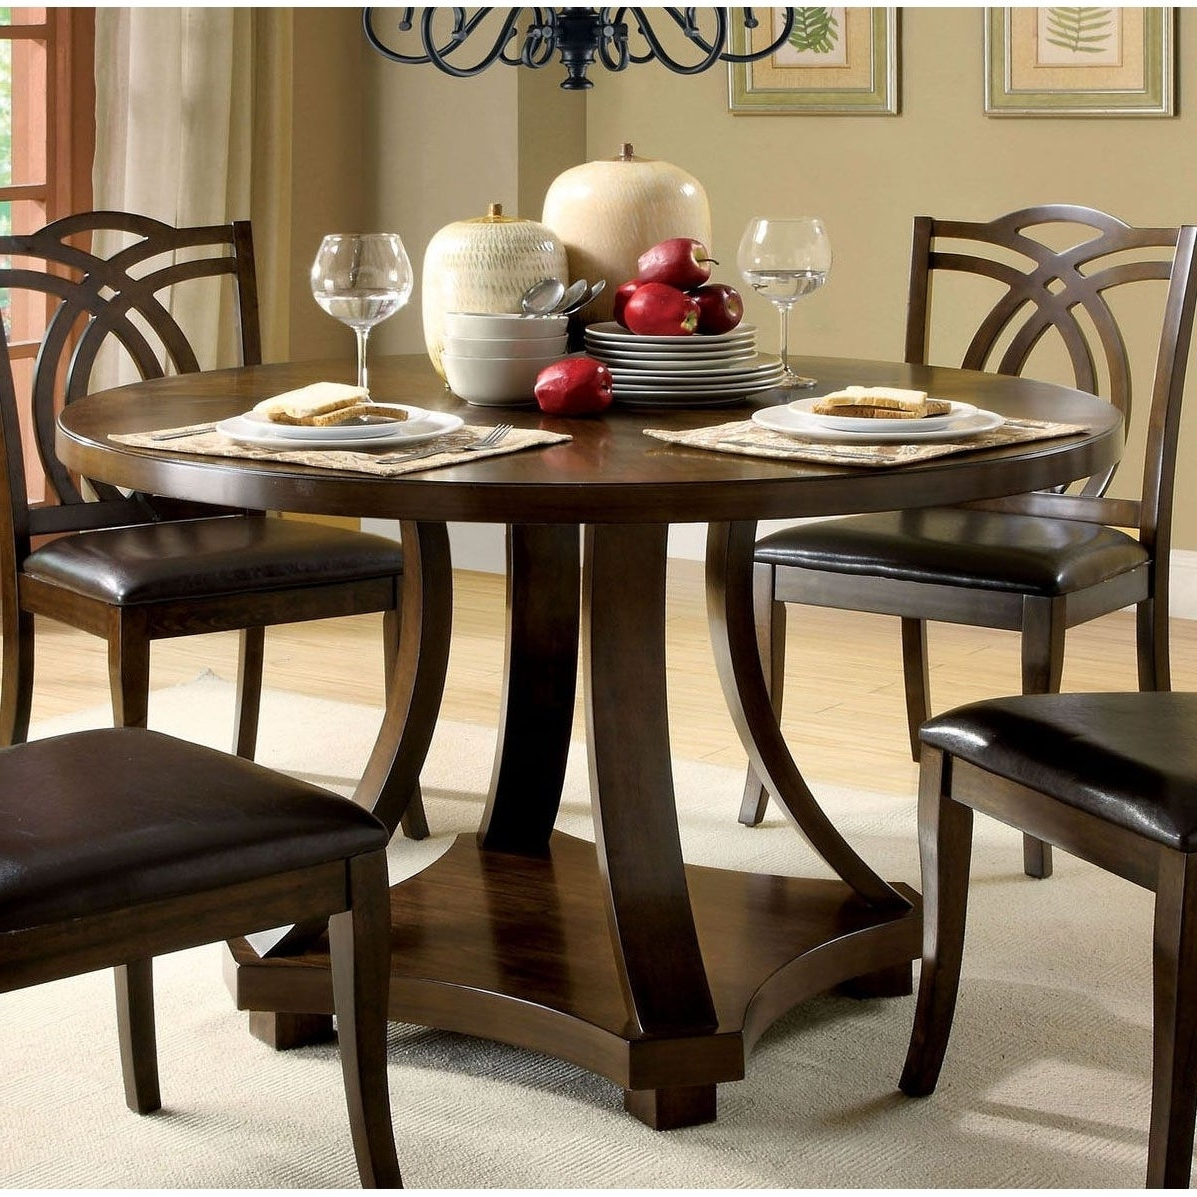 Preferred Shop Transitional Round Dining Table, Dark Walnut Brown – Free Throughout Biggs 5 Piece Counter Height Solid Wood Dining Sets (Set Of 5) (View 13 of 25)